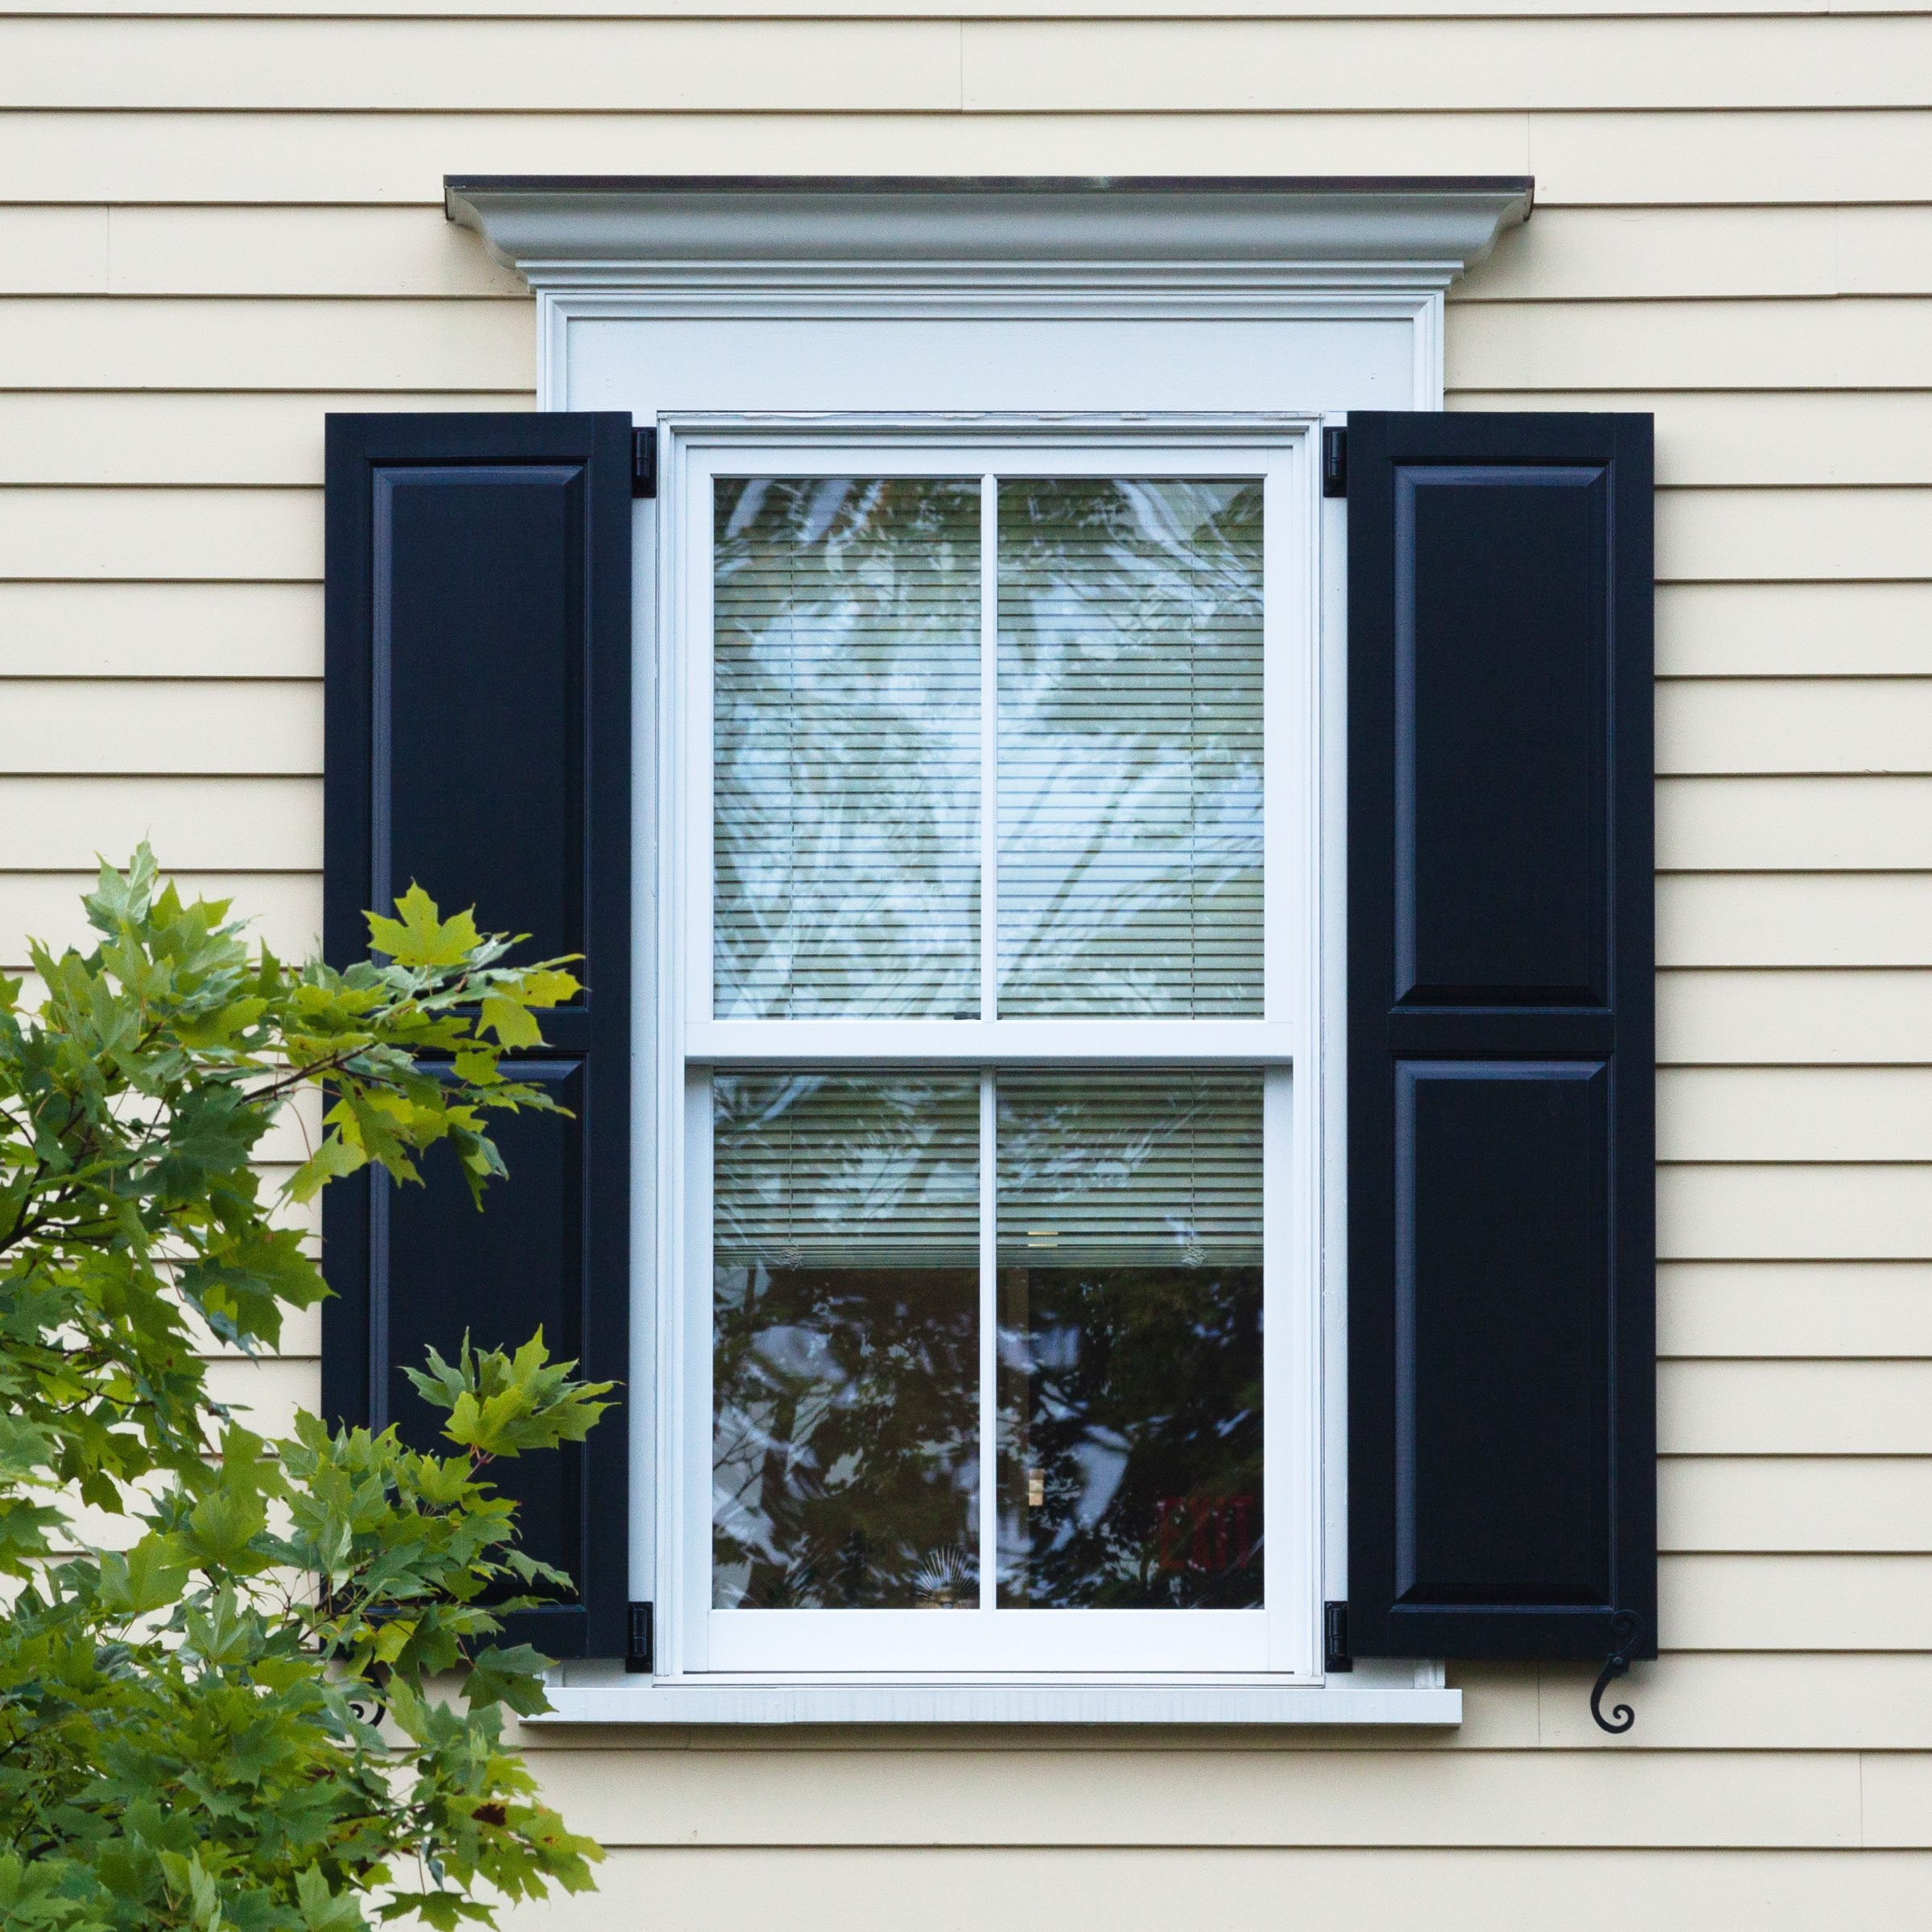 exterior shot of a window of a house with dark shutters